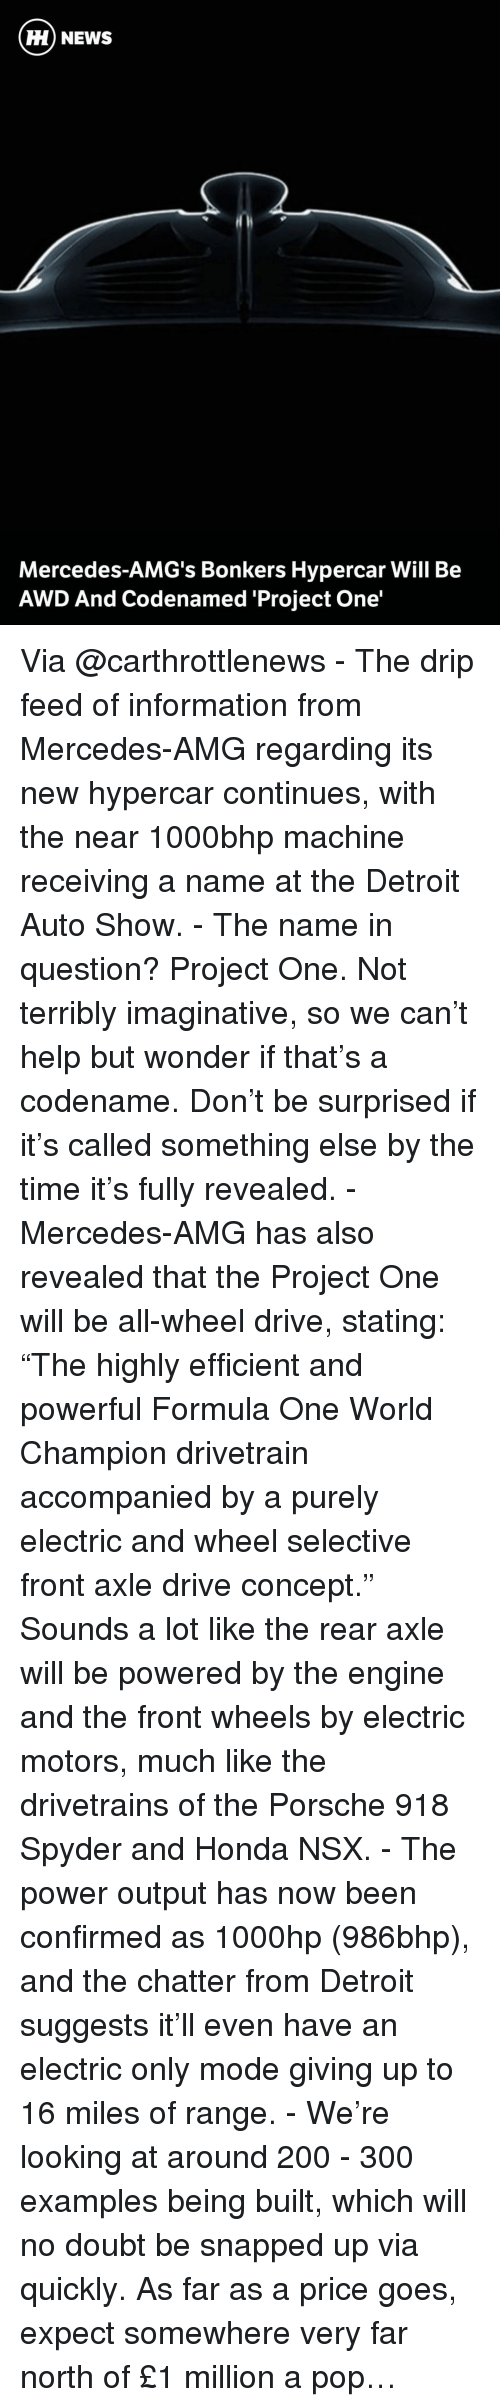 """Detroit, Honda, and Memes: HH NEWS  Mercedes-AMG's Bonkers Hypercar Will Be  AWD And Codenamed Project One' Via @carthrottlenews - The drip feed of information from Mercedes-AMG regarding its new hypercar continues, with the near 1000bhp machine receiving a name at the Detroit Auto Show. - The name in question? Project One. Not terribly imaginative, so we can't help but wonder if that's a codename. Don't be surprised if it's called something else by the time it's fully revealed. - Mercedes-AMG has also revealed that the Project One will be all-wheel drive, stating: """"The highly efficient and powerful Formula One World Champion drivetrain accompanied by a purely electric and wheel selective front axle drive concept."""" Sounds a lot like the rear axle will be powered by the engine and the front wheels by electric motors, much like the drivetrains of the Porsche 918 Spyder and Honda NSX. - The power output has now been confirmed as 1000hp (986bhp), and the chatter from Detroit suggests it'll even have an electric only mode giving up to 16 miles of range. - We're looking at around 200 - 300 examples being built, which will no doubt be snapped up via quickly. As far as a price goes, expect somewhere very far north of £1 million a pop…"""